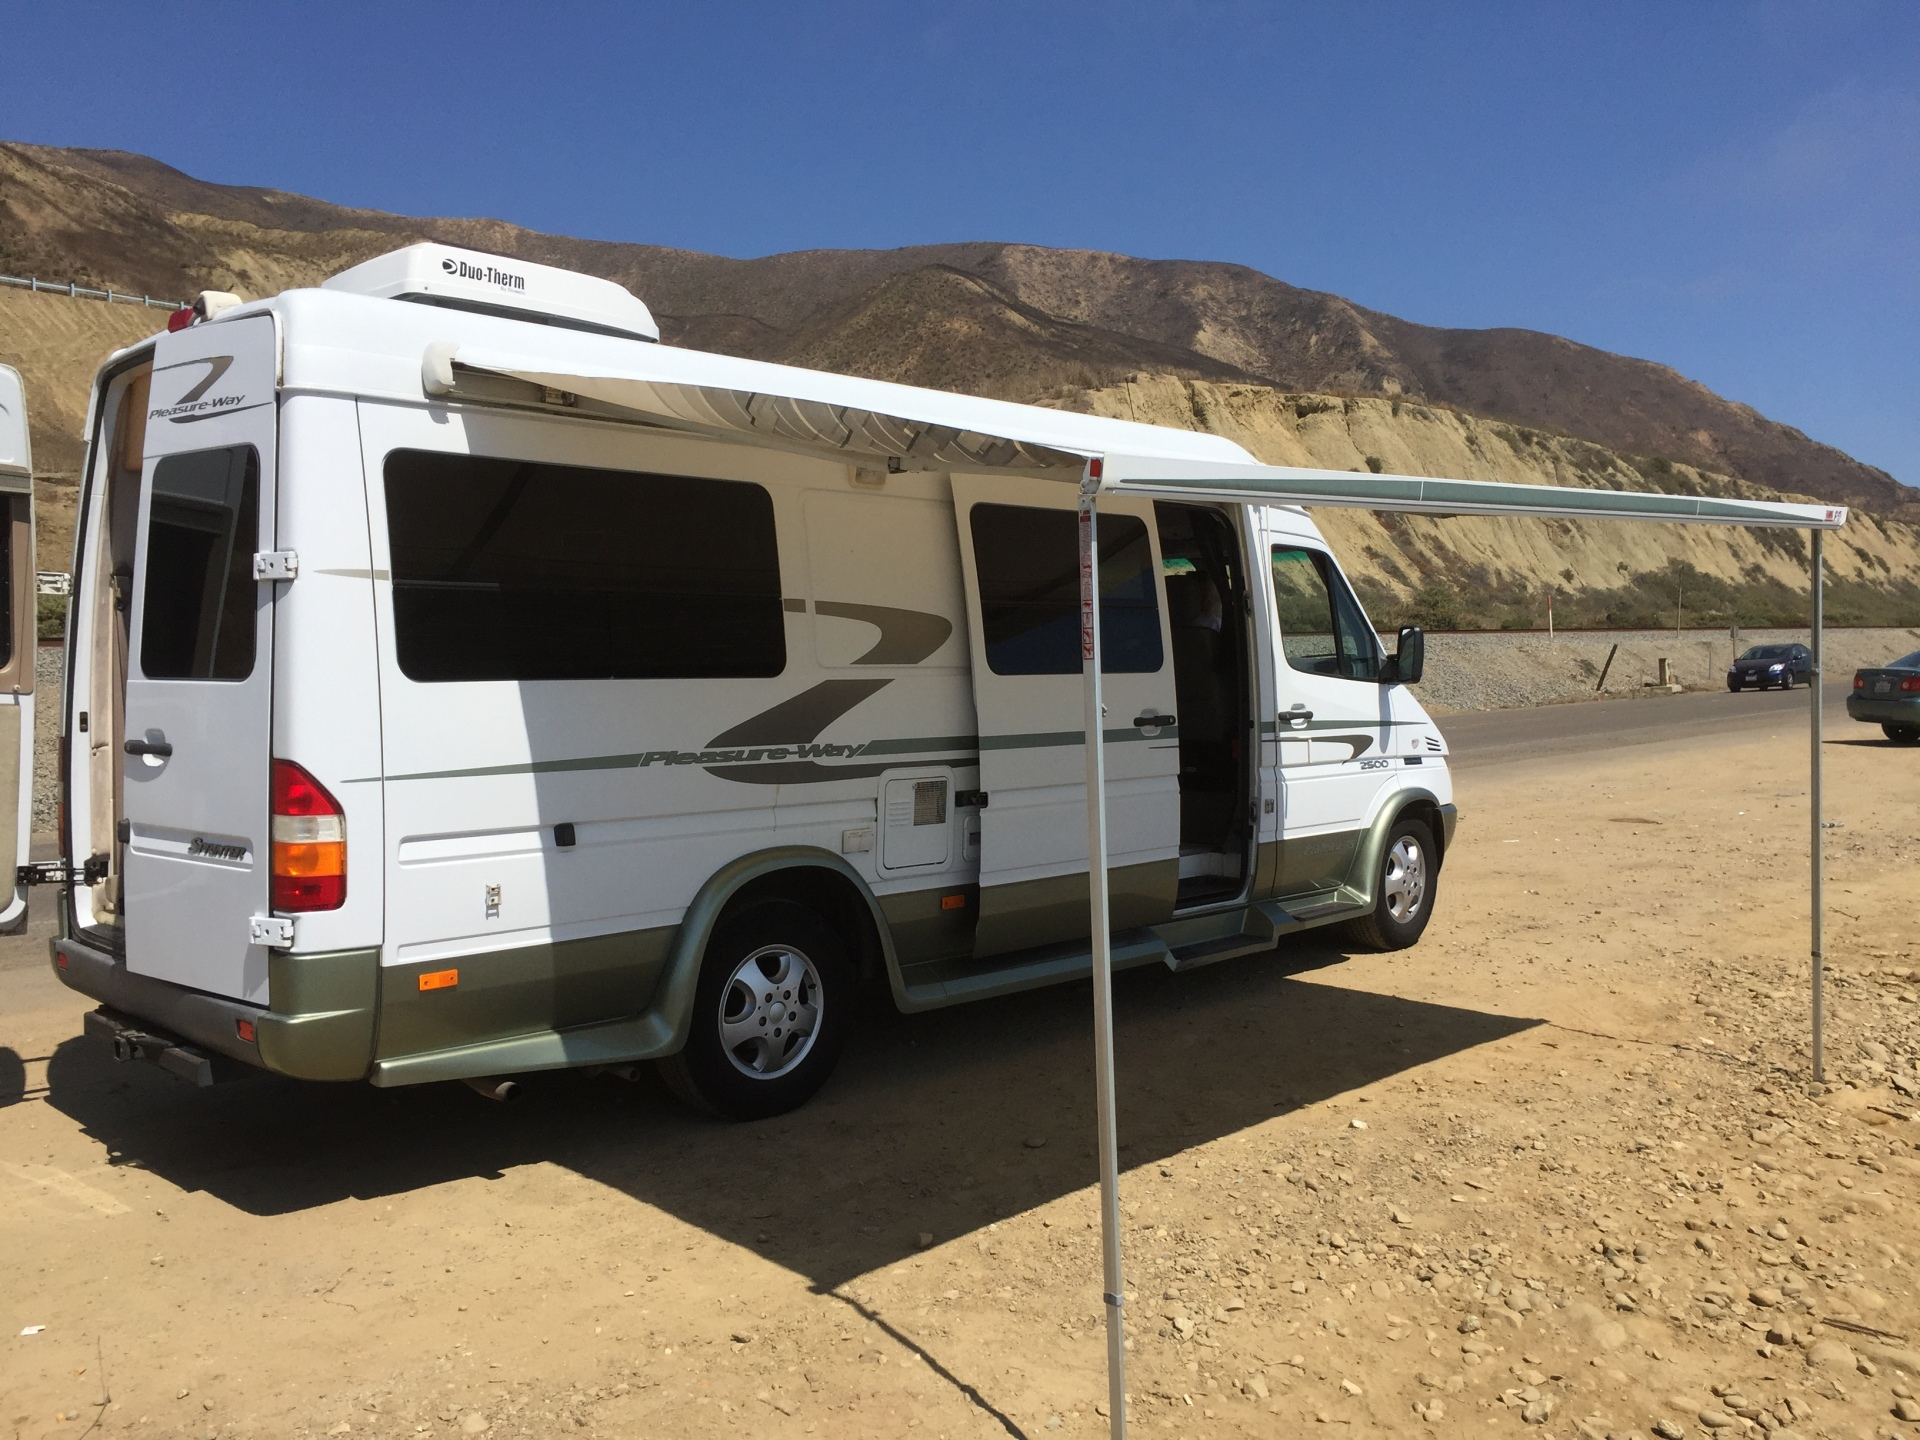 22 Foot Mercedes Pleasure Way (sleeps 3) $1,250/wk or $195/day